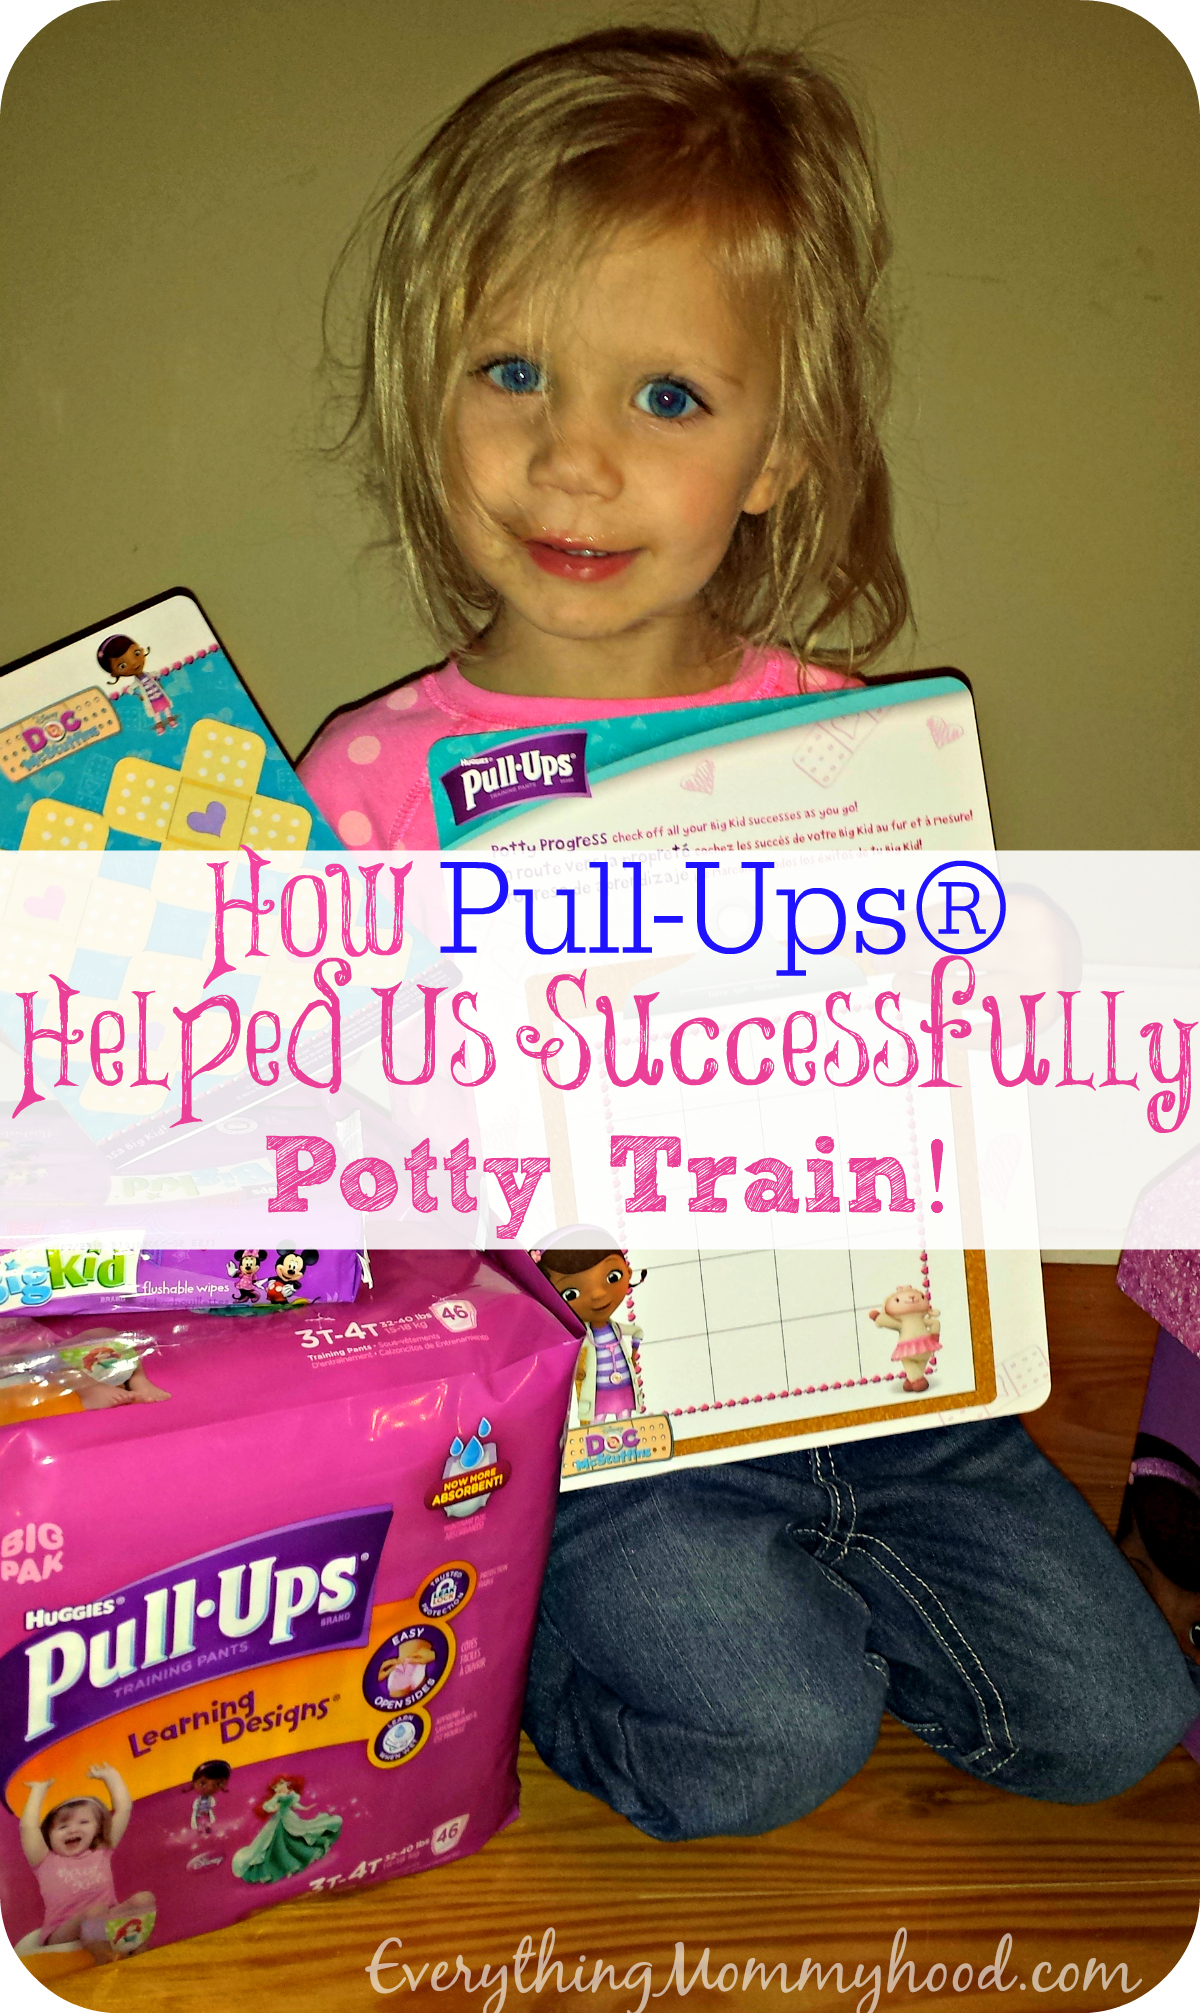 how pull ups reg helped us successfully potty train and a giveaway potty train yikes as a parent it s no secret that potty training your toddler is one of the most daunting and possibly most stressful tasks we have